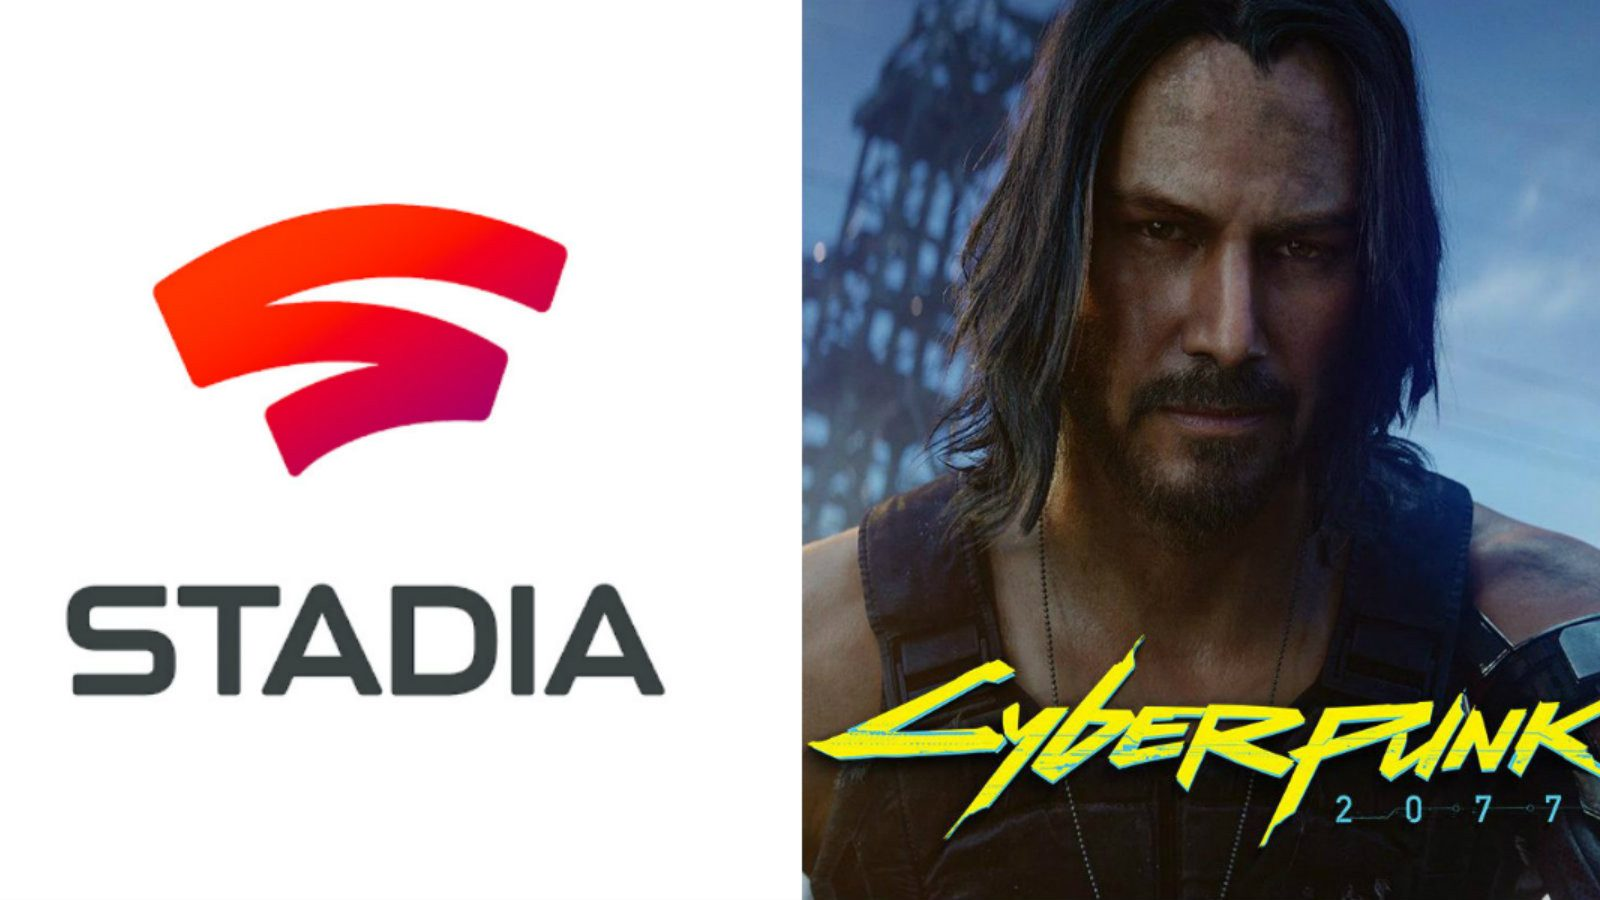 Cyberpunk 2077 coming to Google Stadia: Everything we know so far - Dexerto